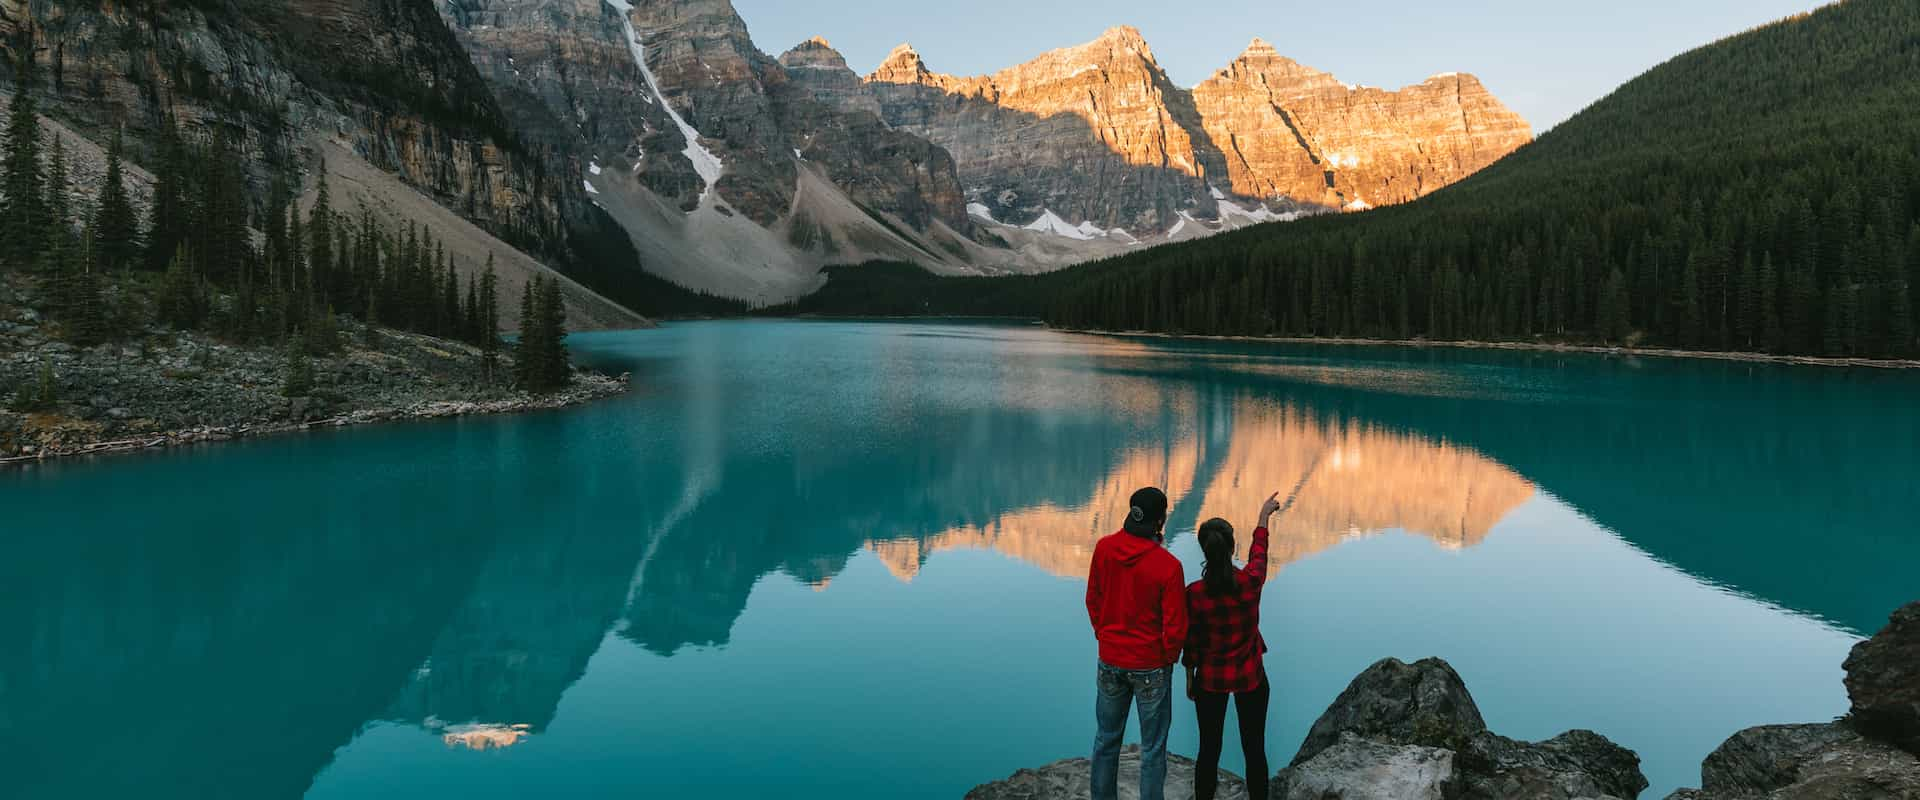 See Moraine Lake on the Mountain Lakes and Waterfalls Tour in the Canadian Rockies